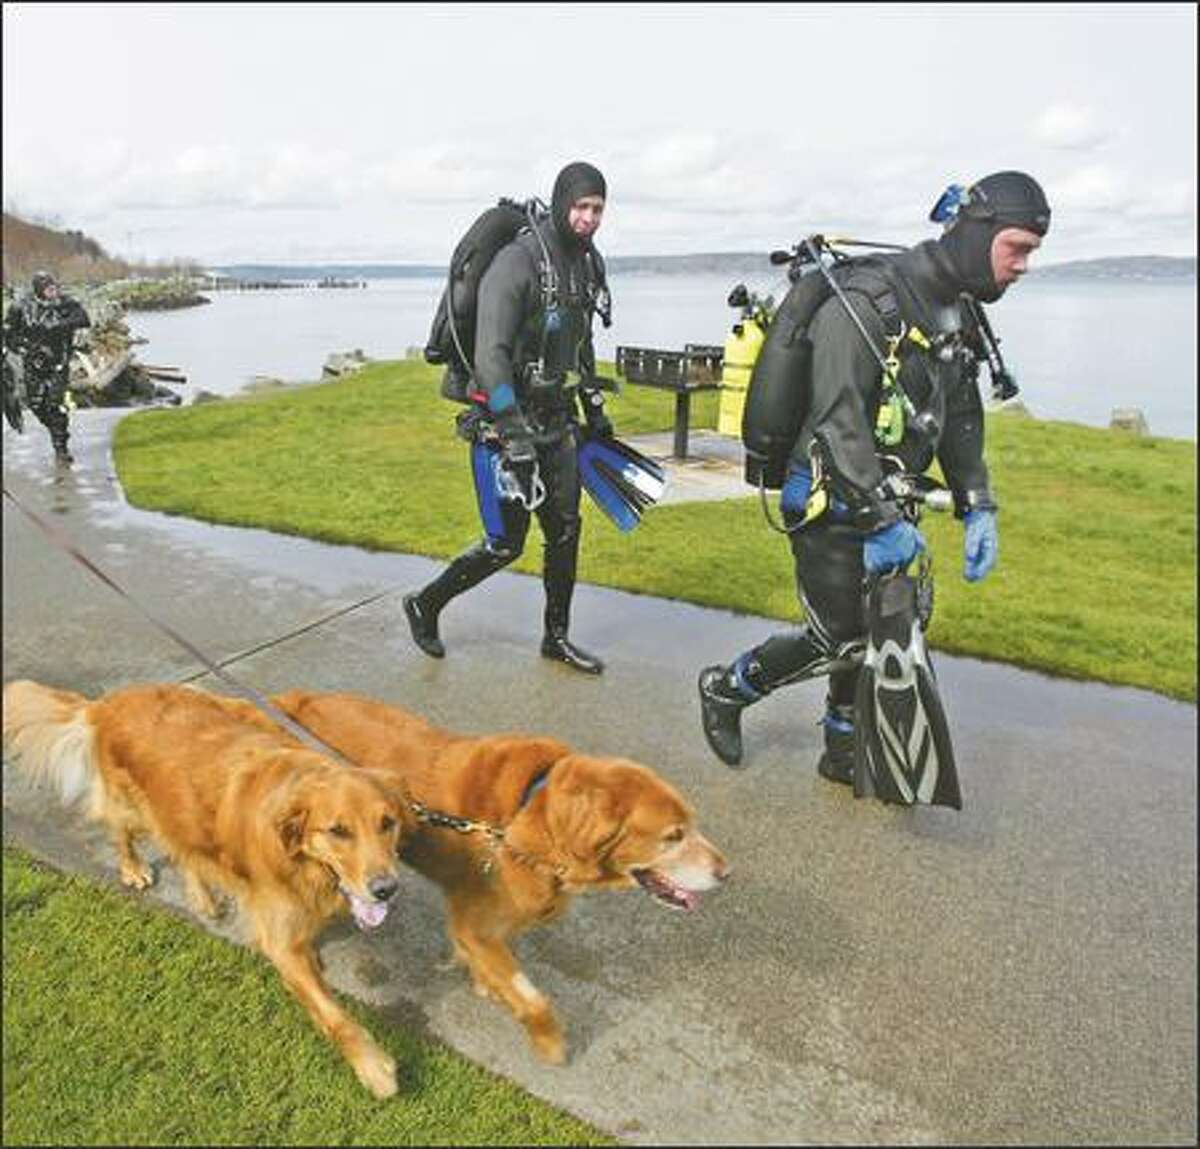 Scuba divers, from left, Chris Davenport and Arron Cummings, come ashore on Ruston Way in Tacoma.